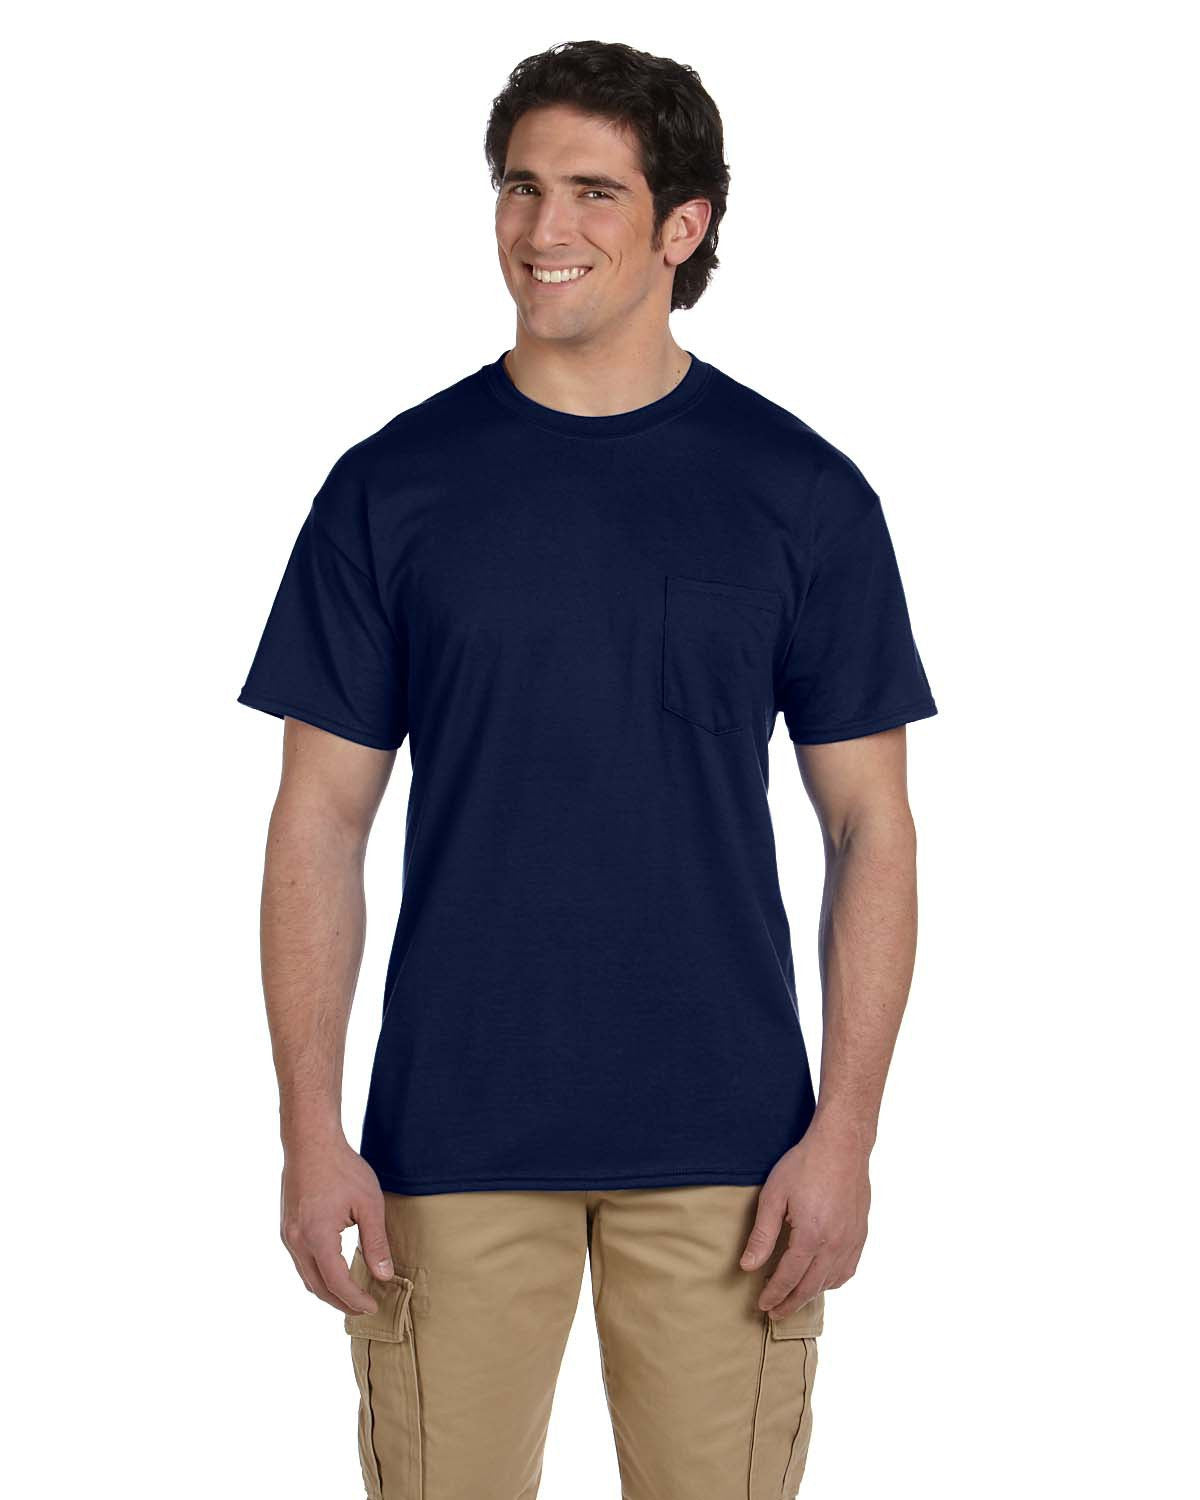 Northstar Gildan Adult DryBlend® 5.6 oz., 50/50 Pocket T-Shirt